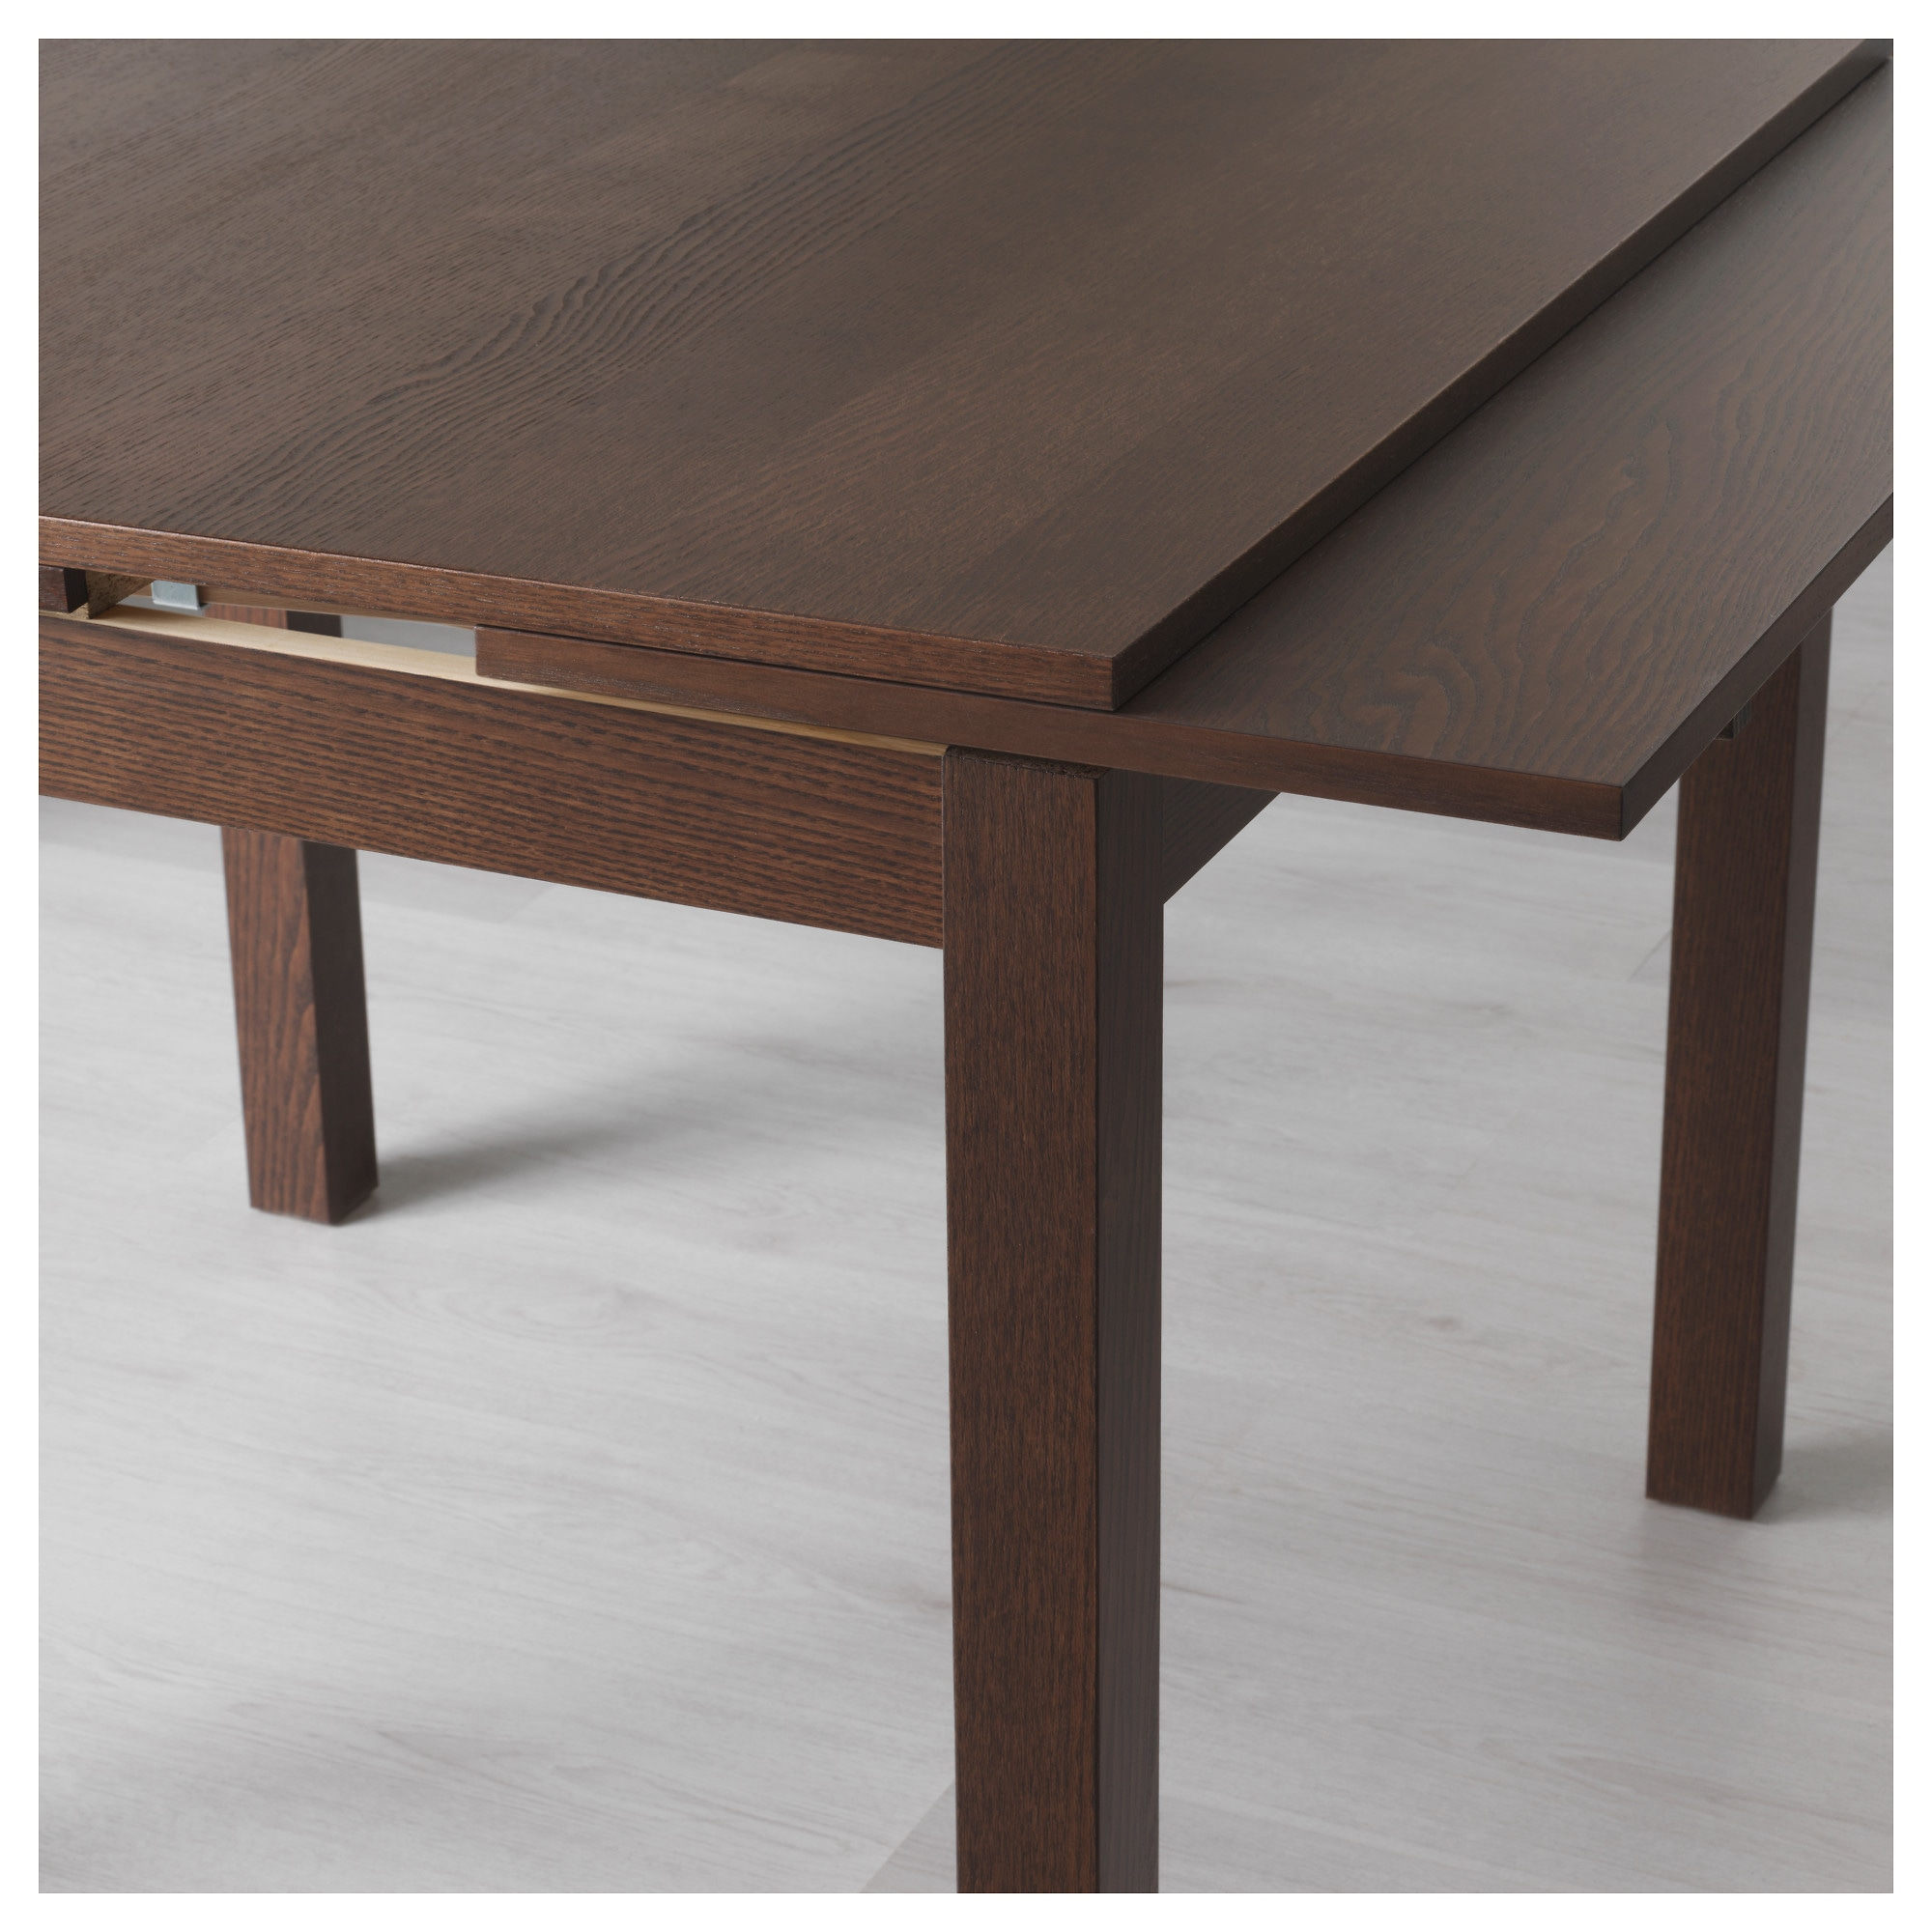 Extending Dining Room Table Stunning Bjursta Extendable Table  Brown  Ikea Decorating Design